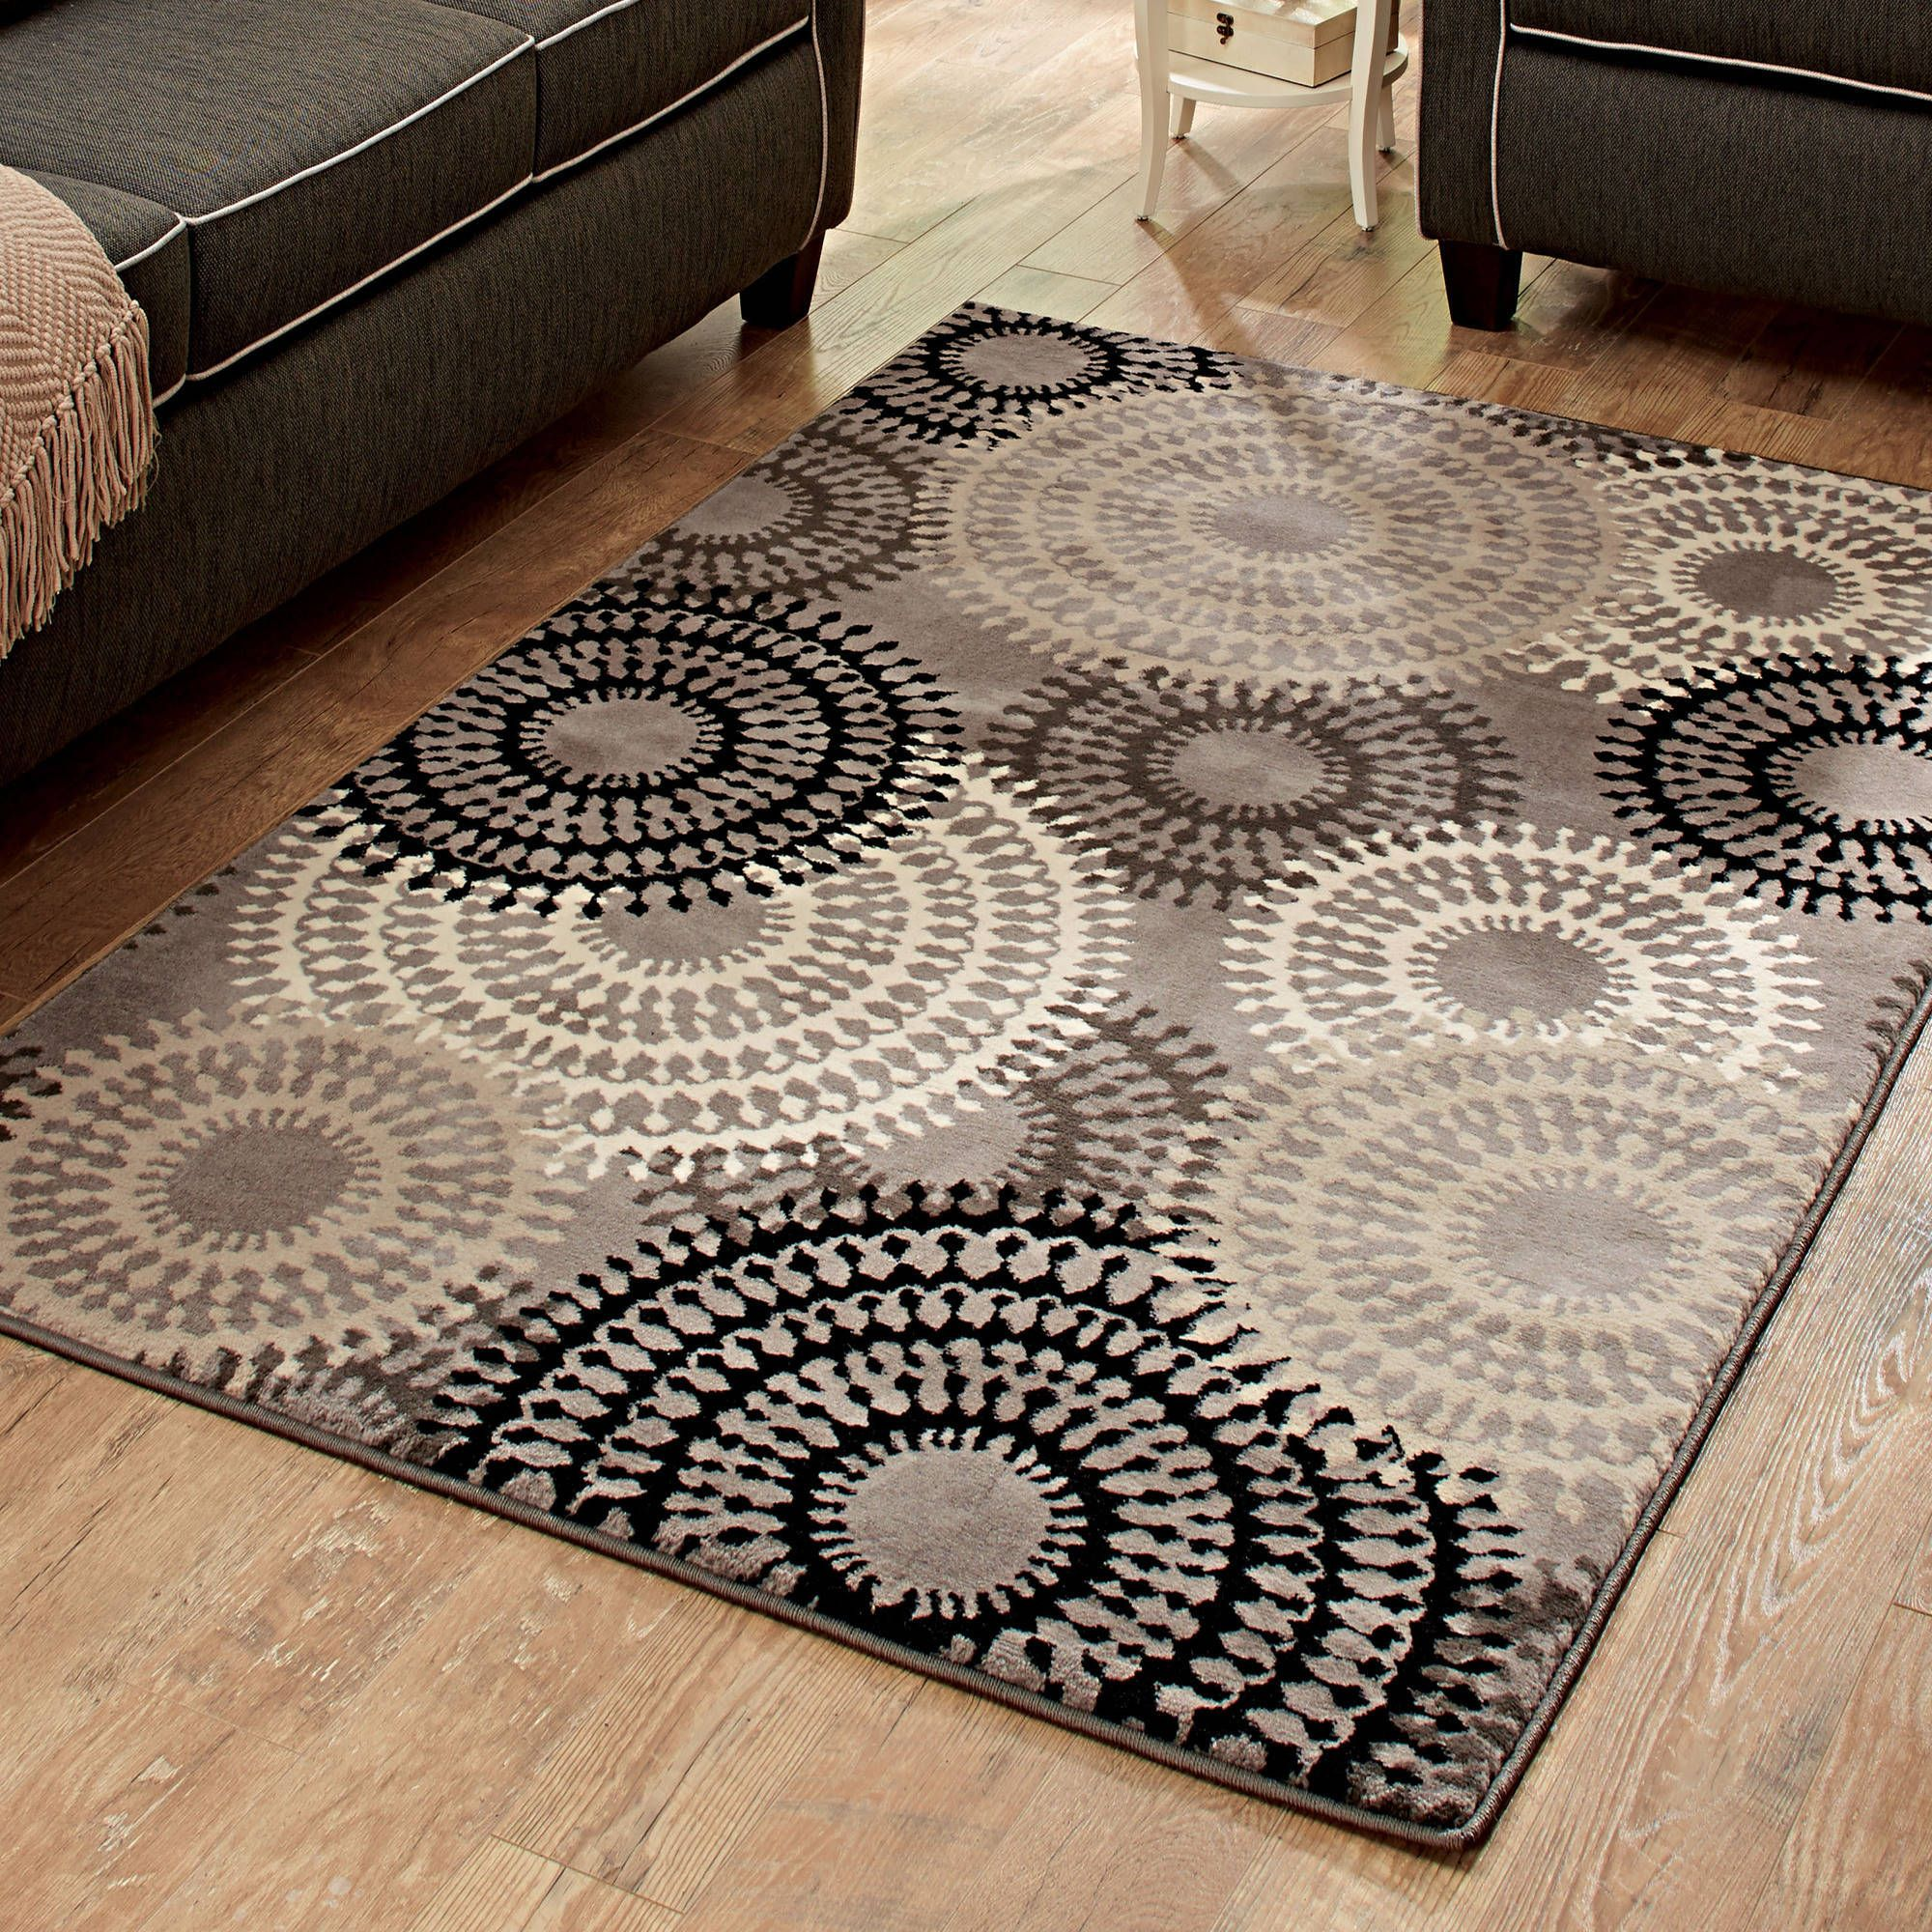 52654a168590f4645a344880be17a713 - Better Homes And Gardens Swirls Area Rug Beige